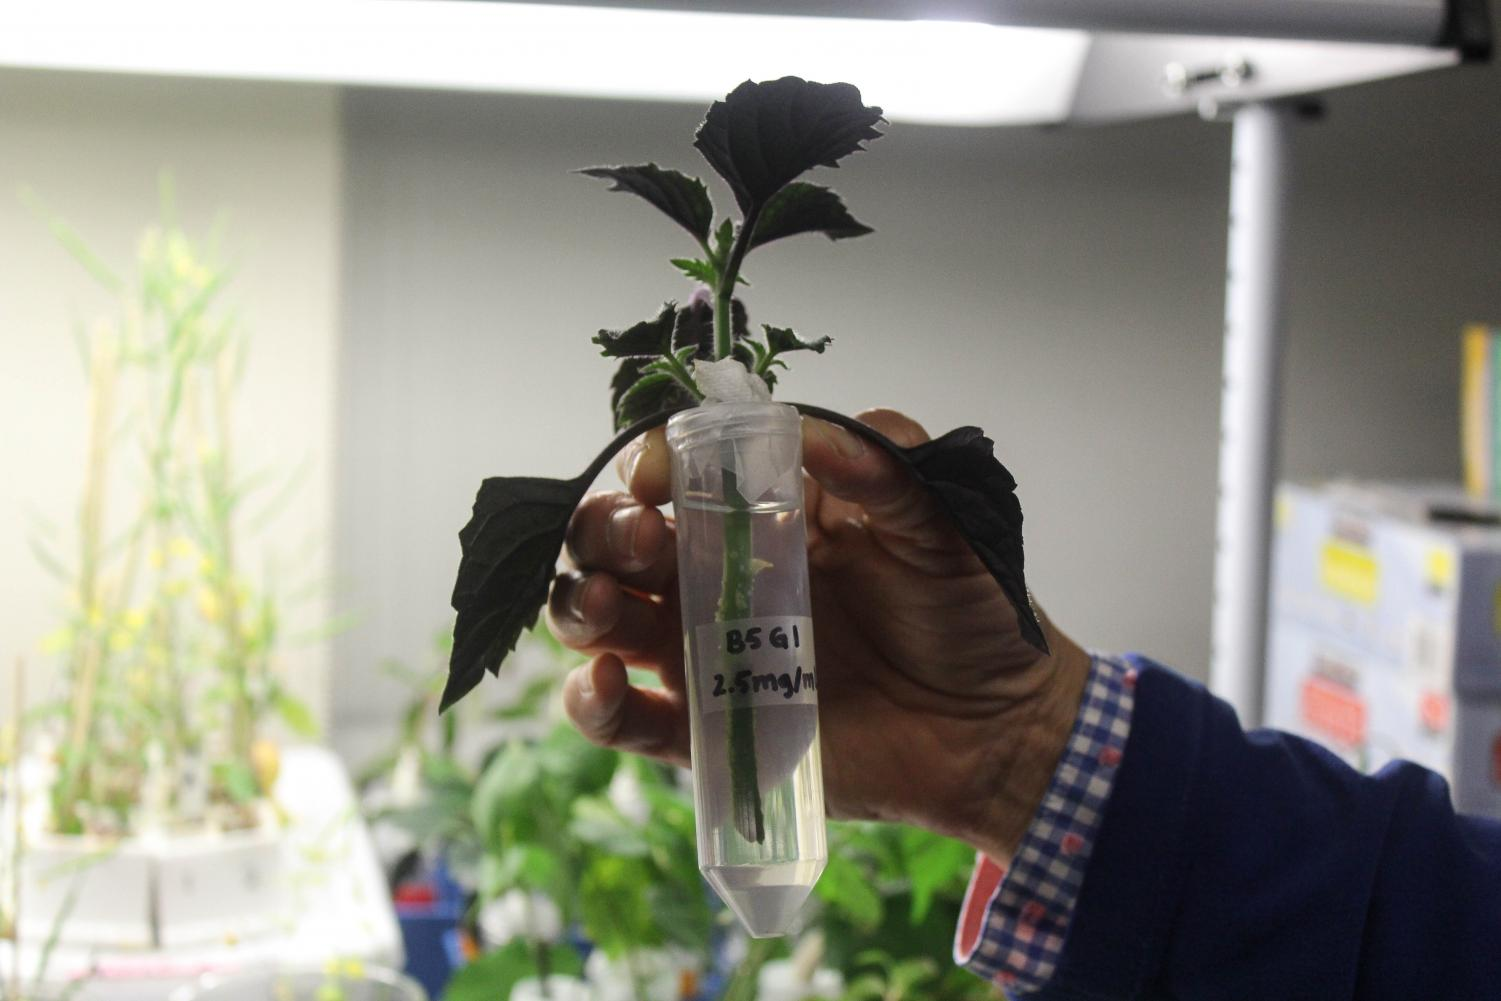 Daley holds a plant that is part of an experiment for bio tech